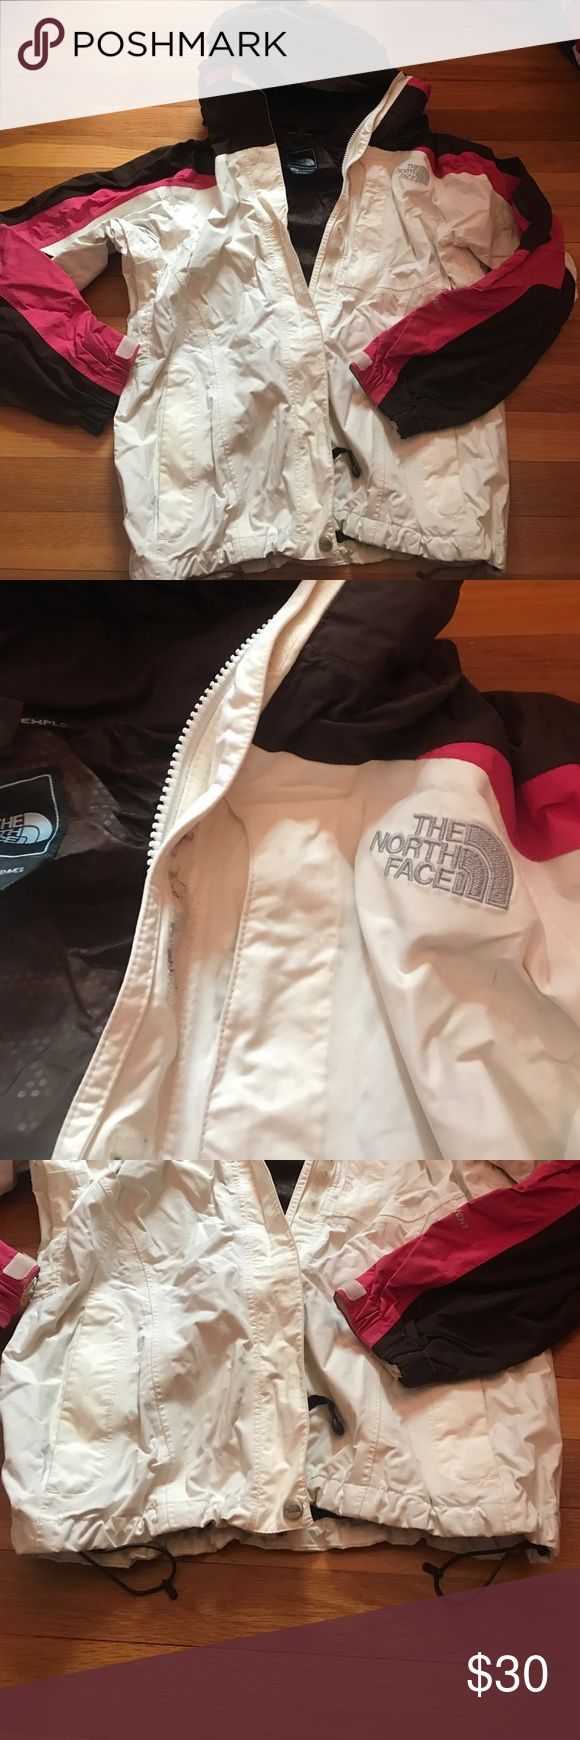 North face winter jacket Good used condition- some discoloration on the white and wear in the Velcro. Size medium from north face; pockets on sides and in arms, inner pocket; adjustments on sleeves and bottom North Face Jackets & Coats